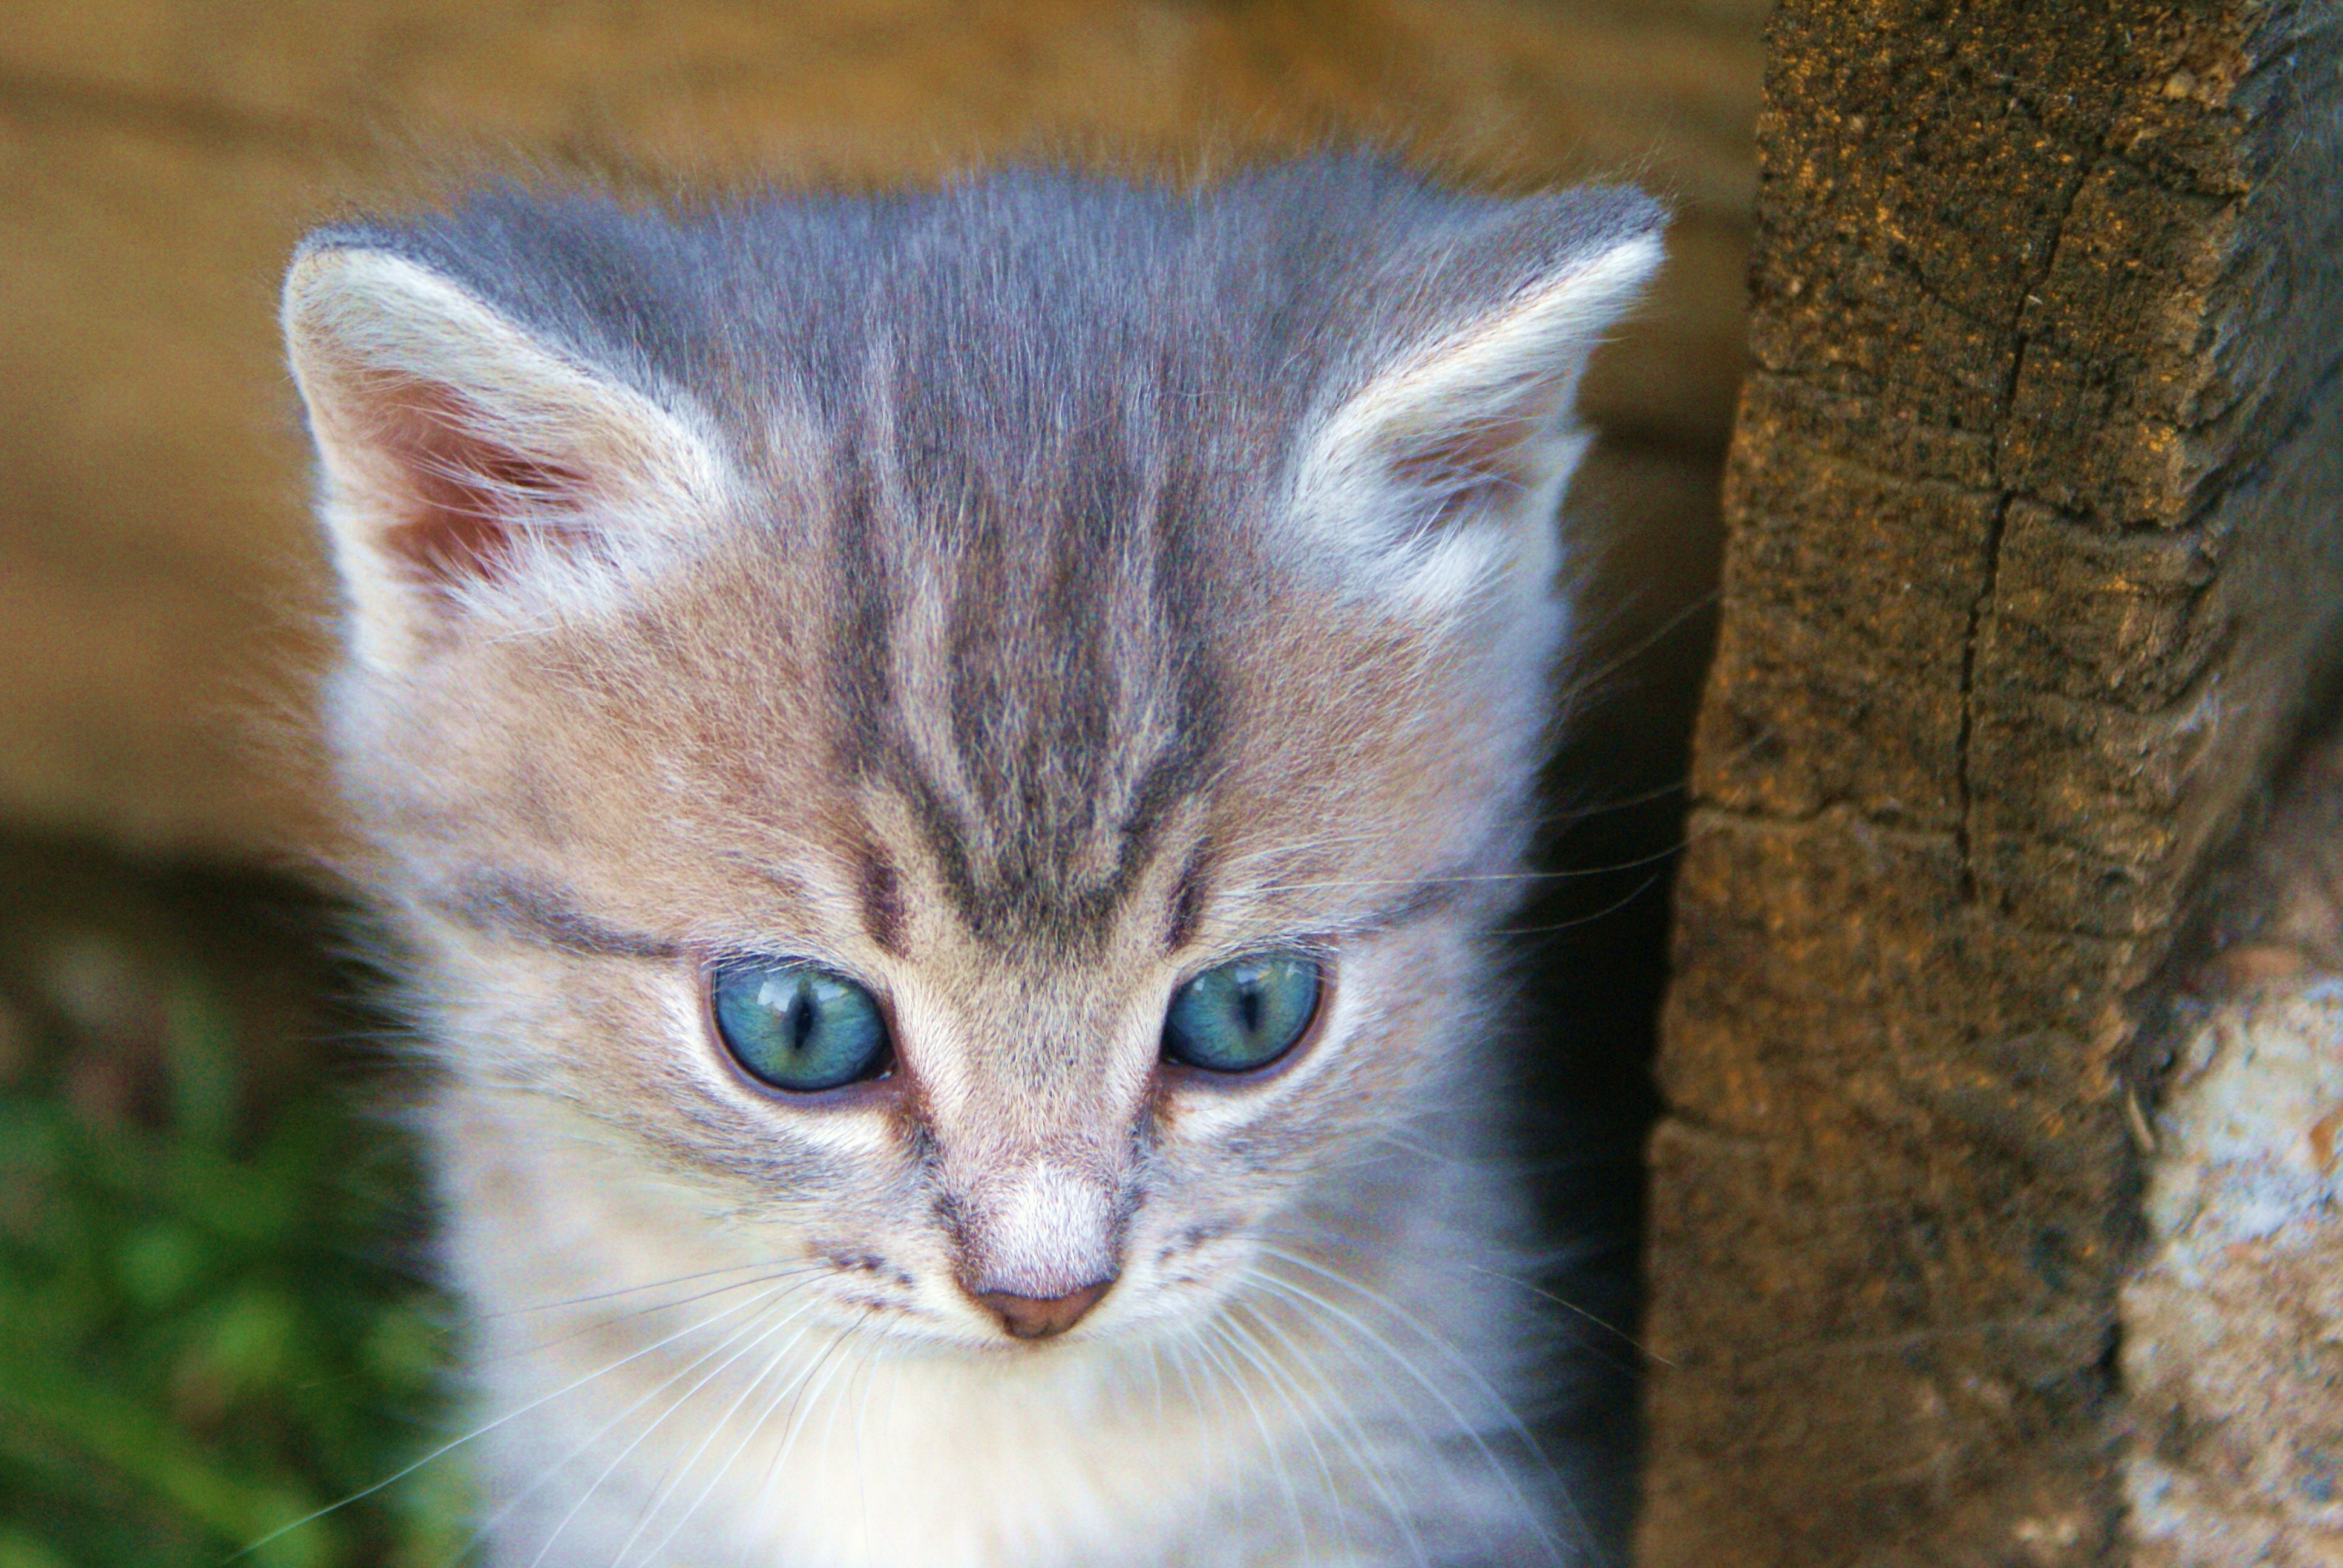 151246 download wallpaper Animals, Kitty, Kitten, Muzzle, Nice, Sweetheart screensavers and pictures for free